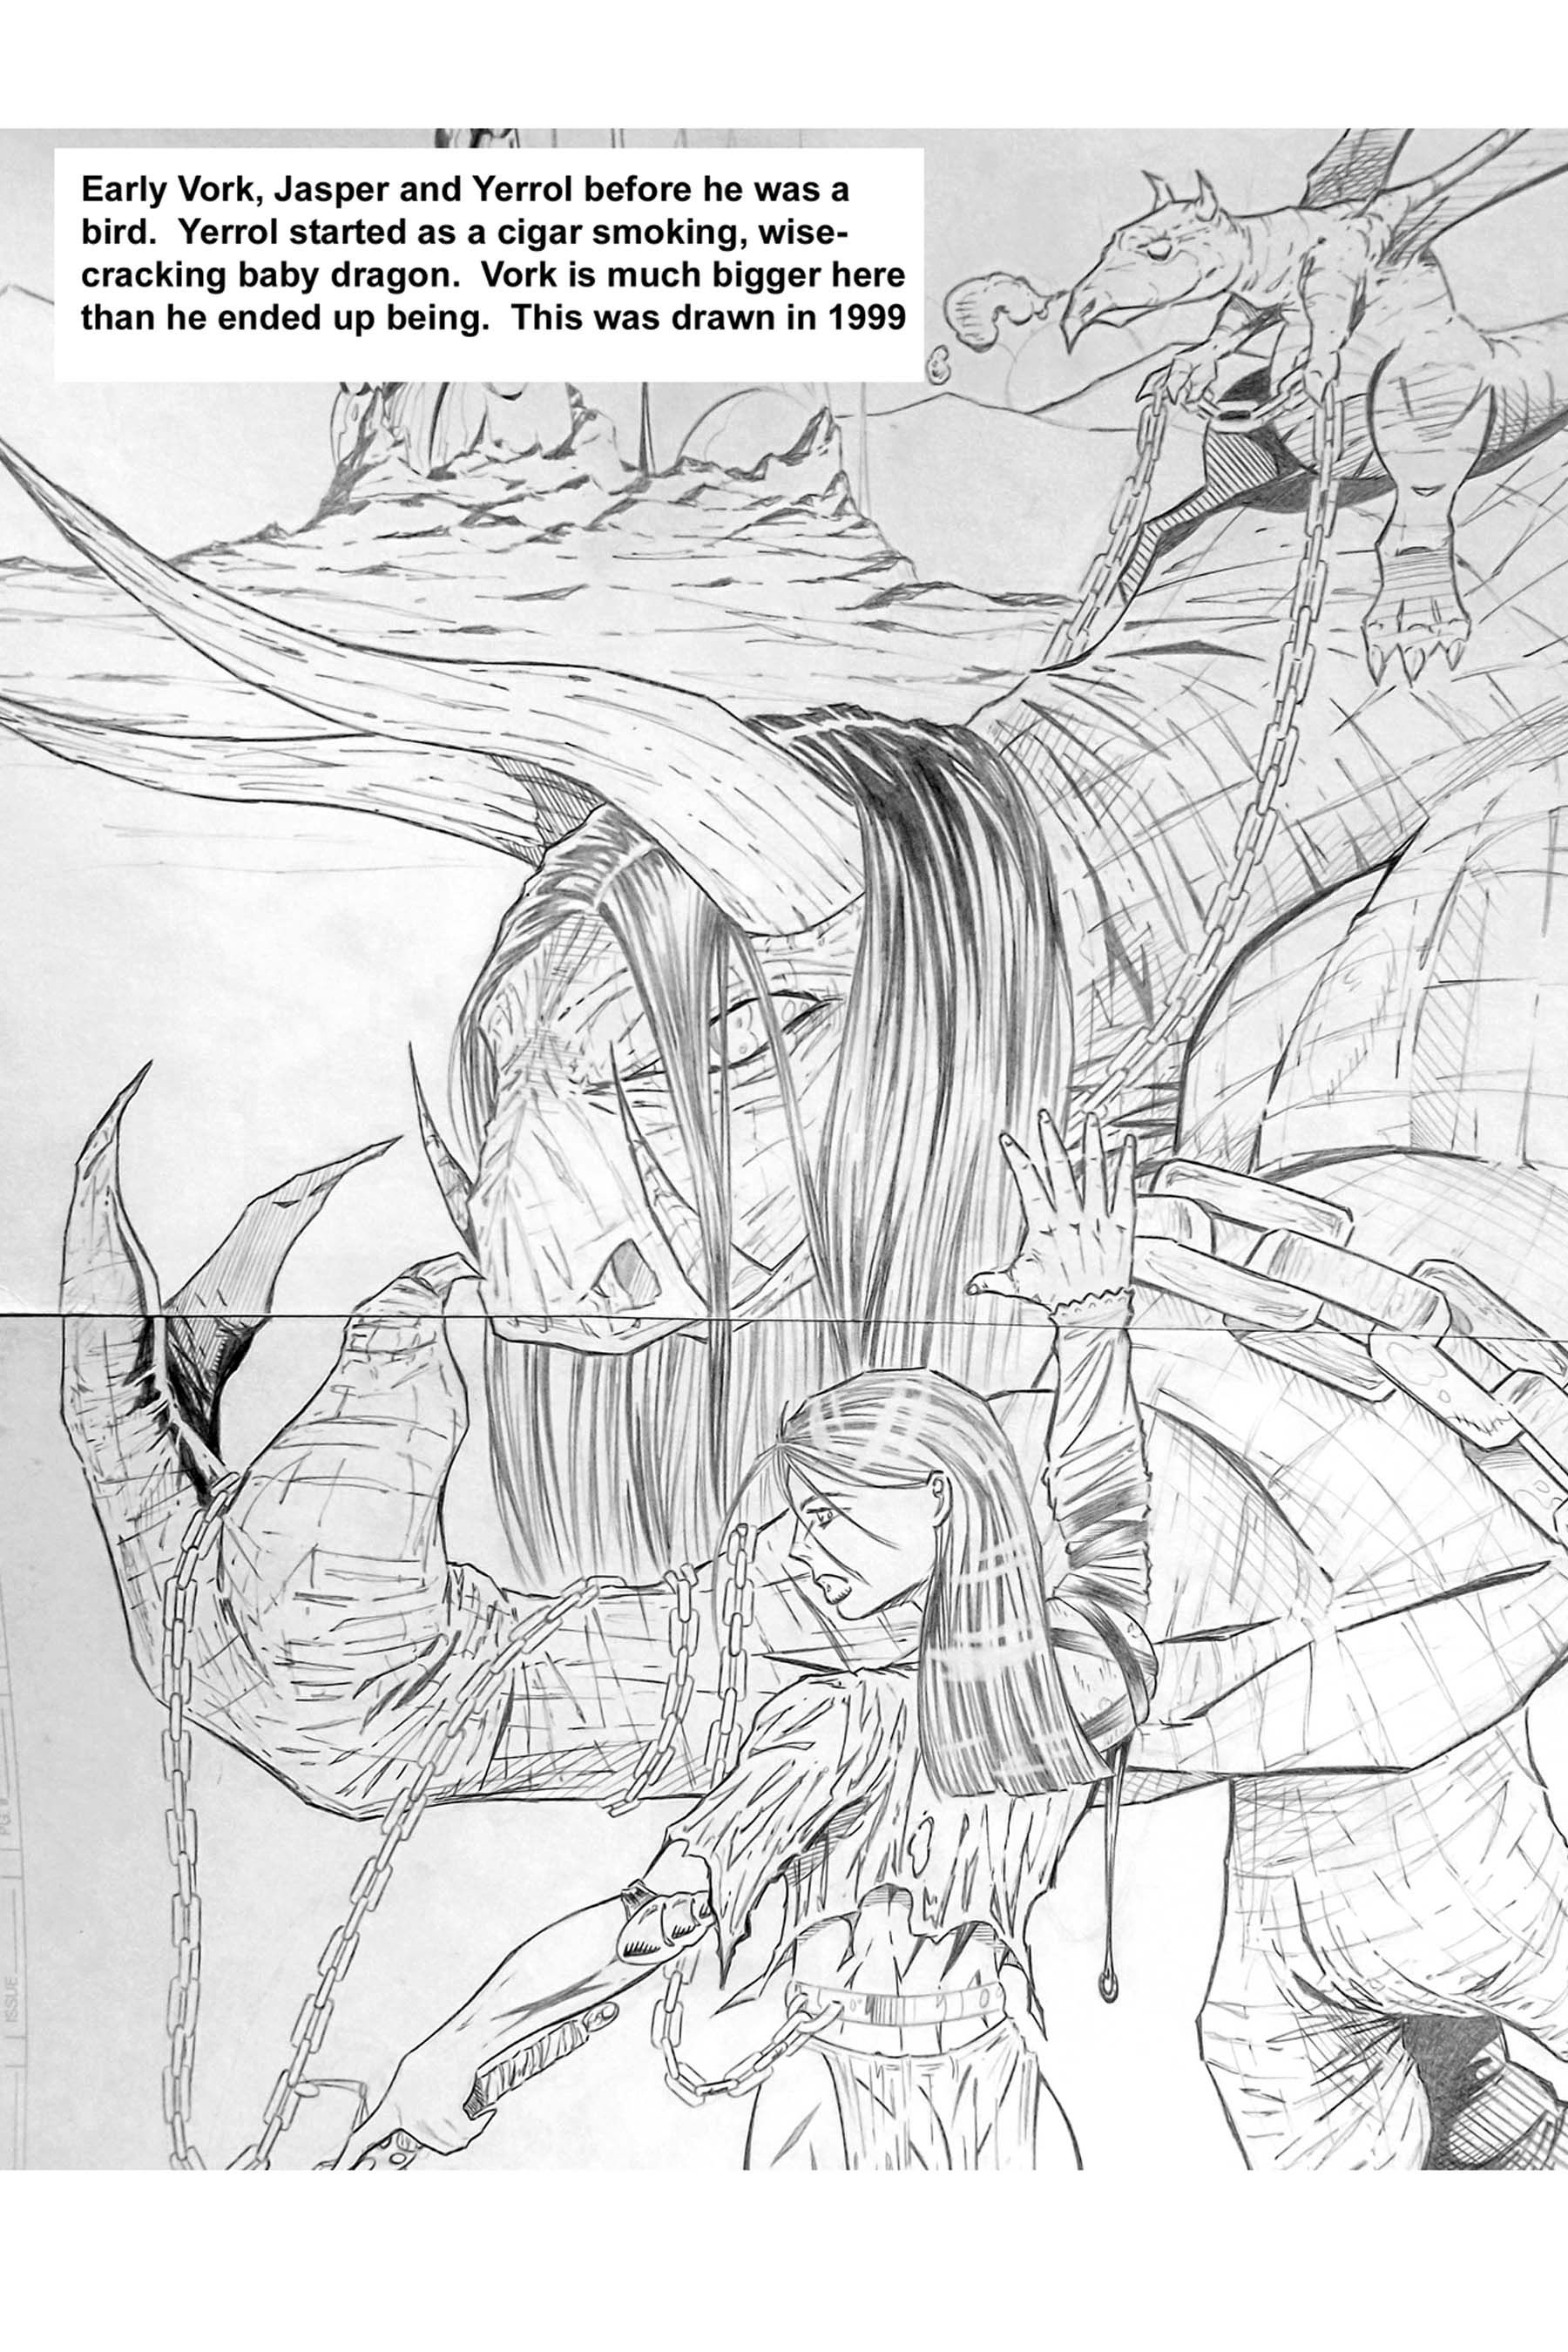 Early drawing of Vork, Jasper and Yerrol, probably done around 1998/99.  This was initially intended to be a comic, but life has a way of changing plans...   ;P